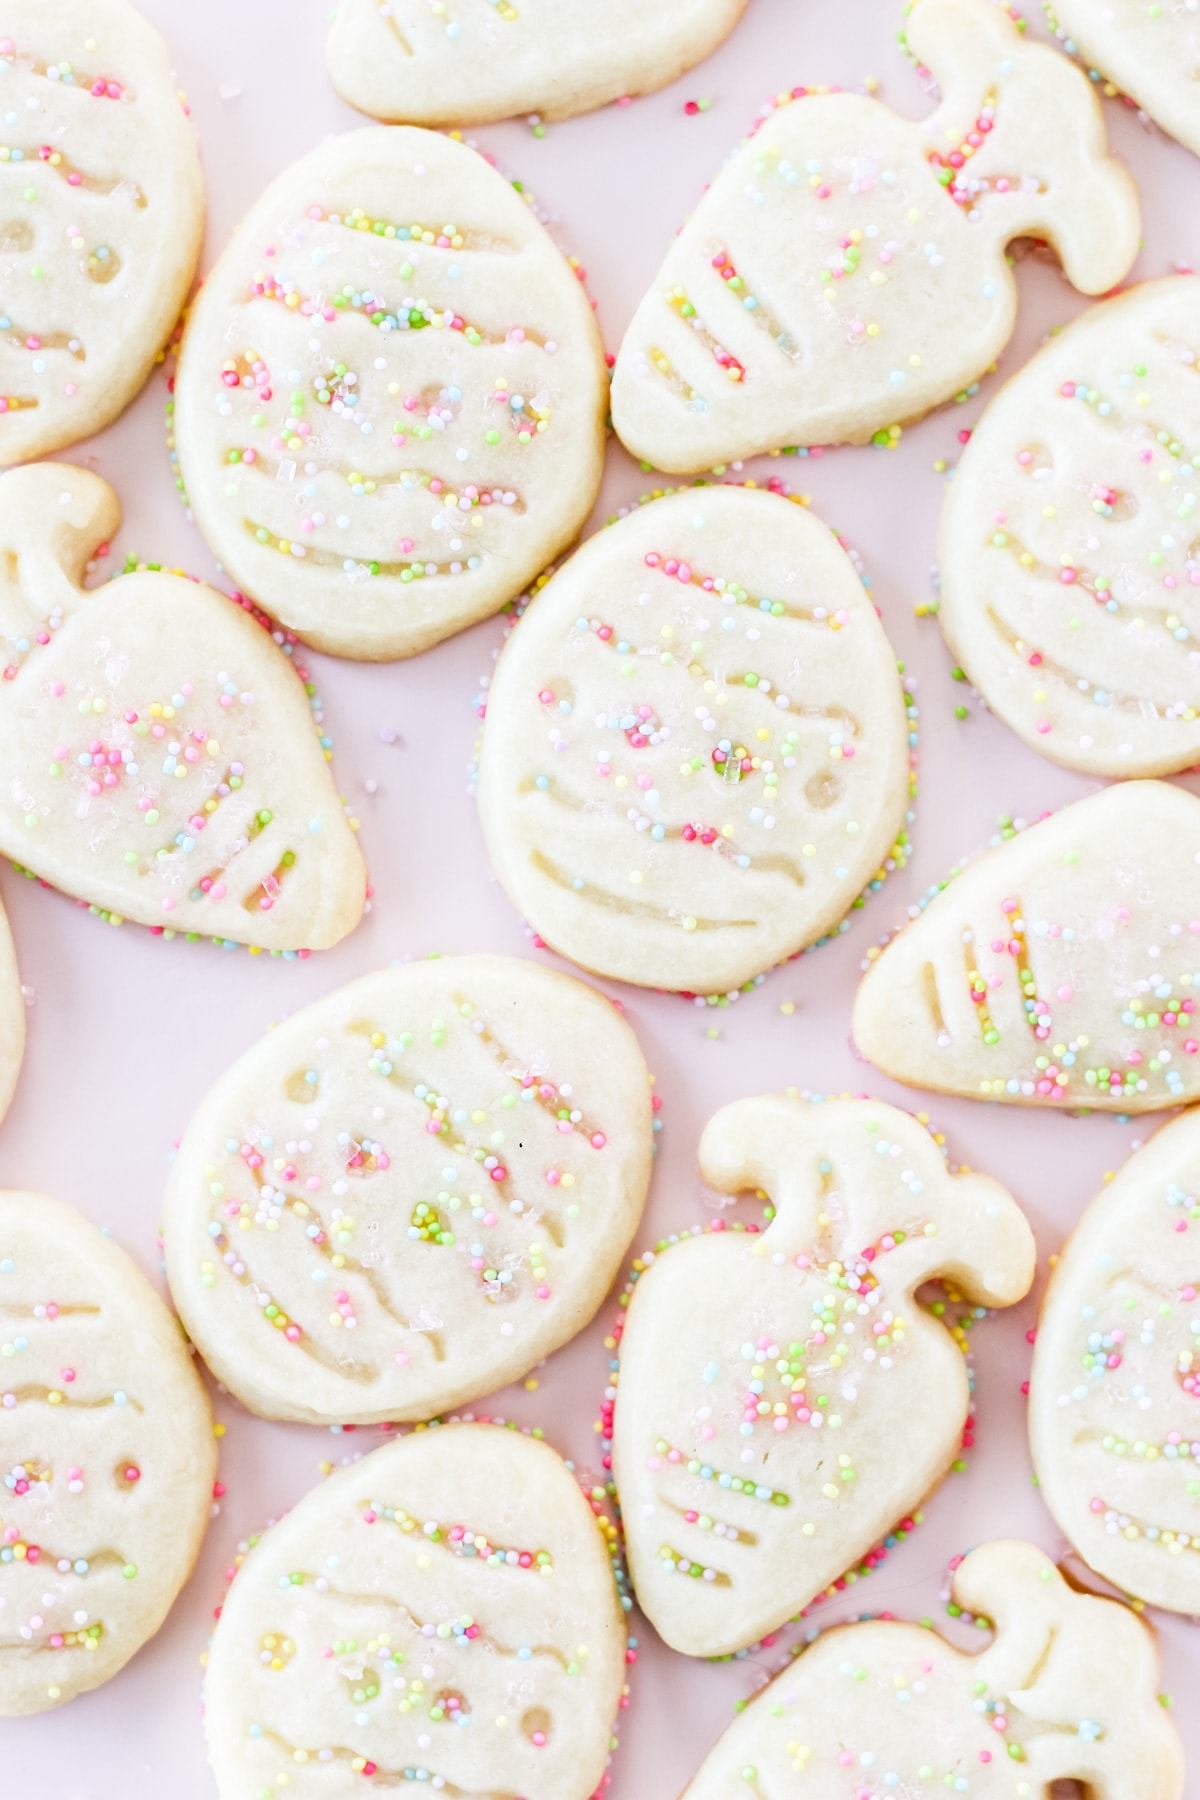 a pink cake plate full of shortbread cut out cookies in the shapes of Easter eggs and carrots